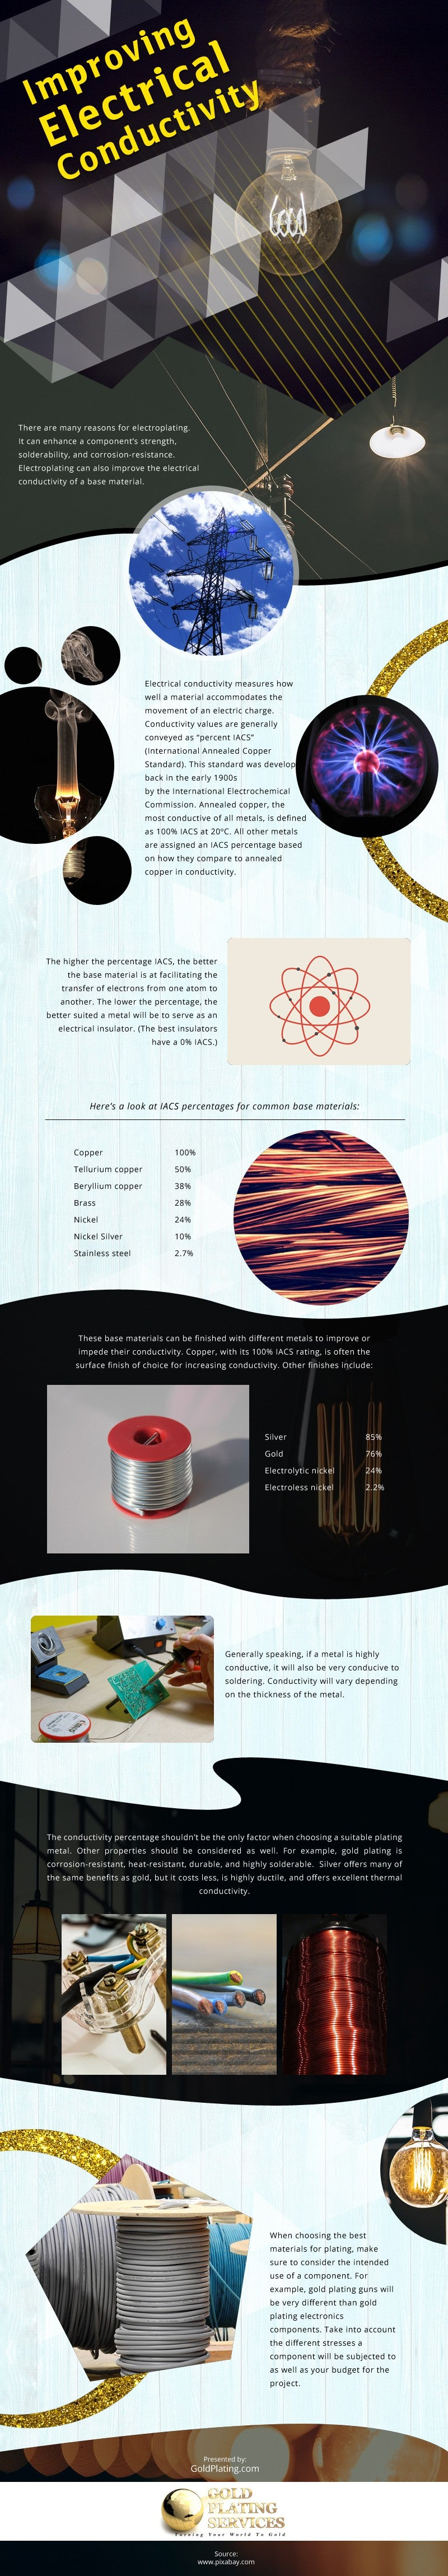 Improving Electrical Conductivity [infographic]